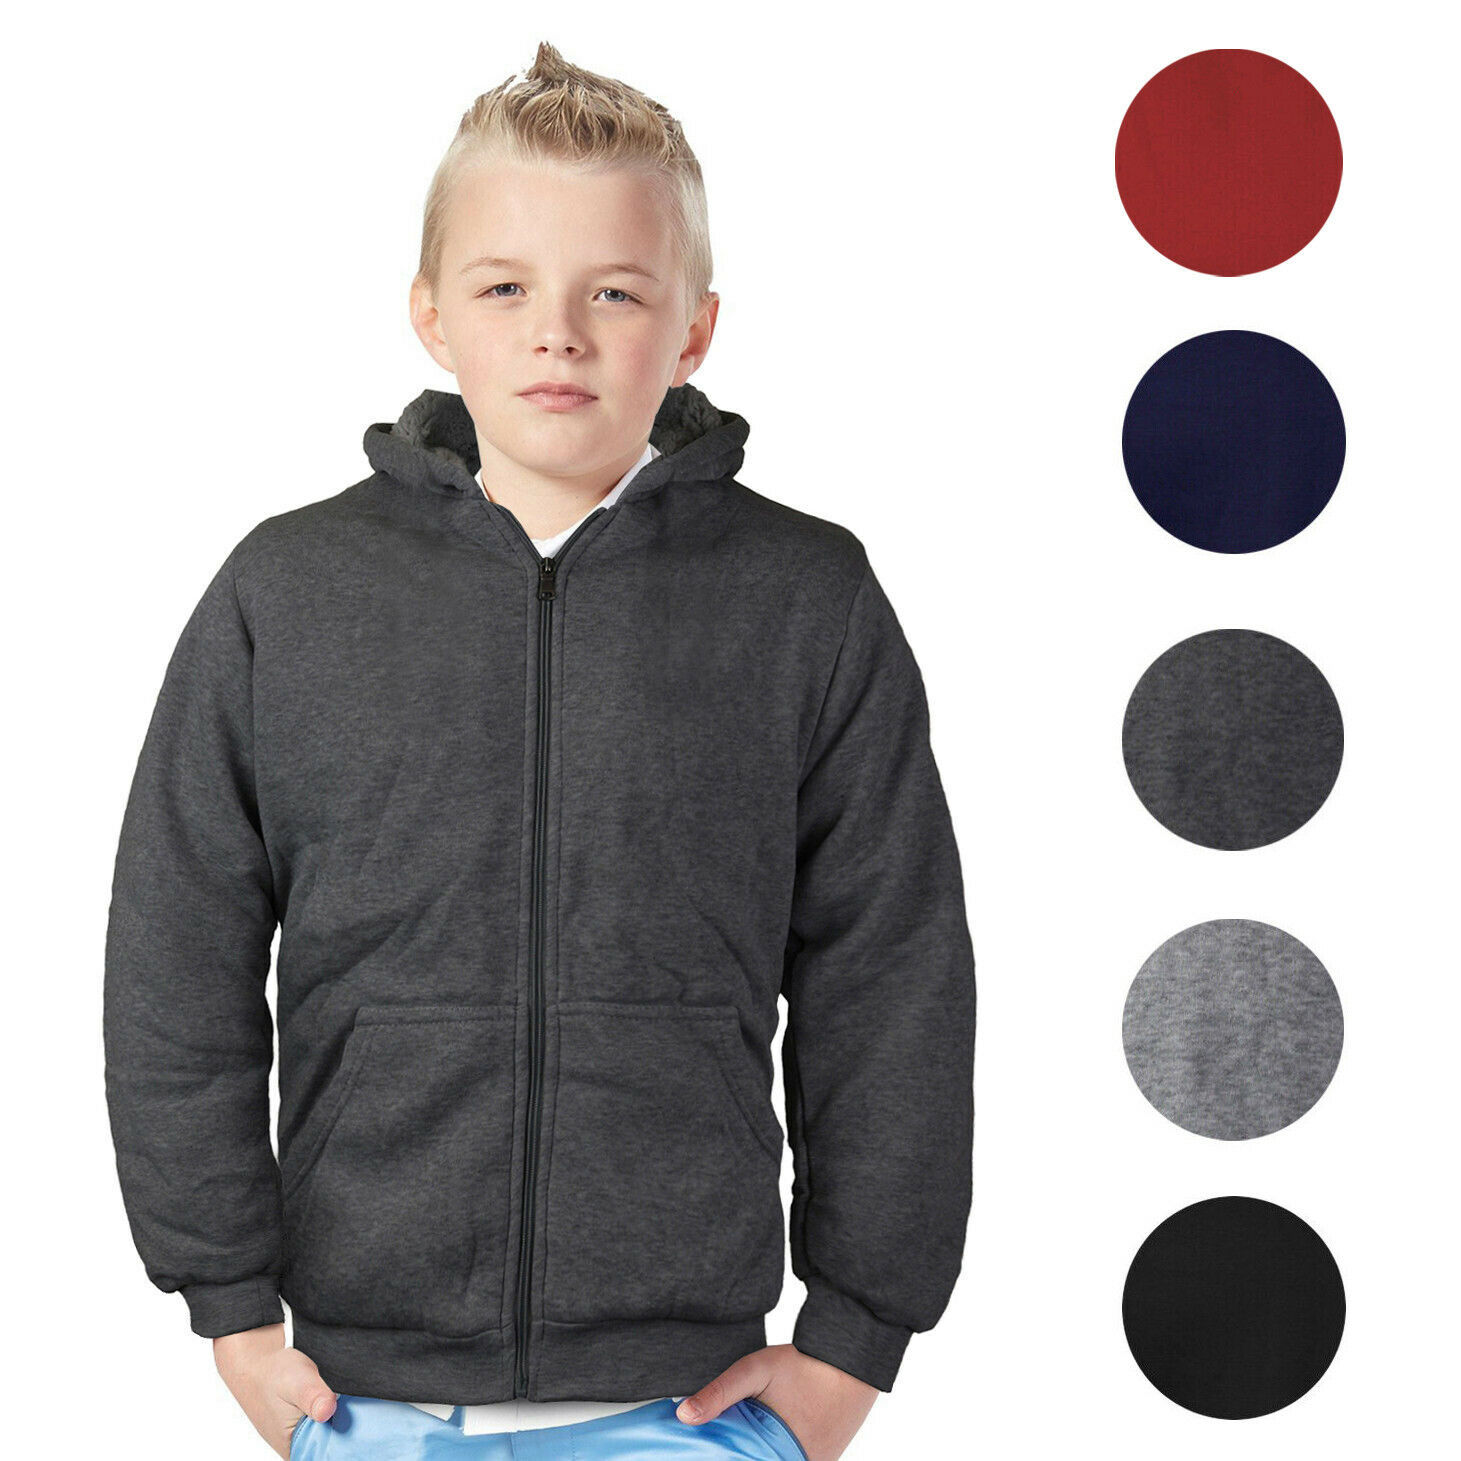 Boys Kids Toddler Athletic Soft Sherpa Lined Fleece Zip Up Hoodie Sweater Jacket